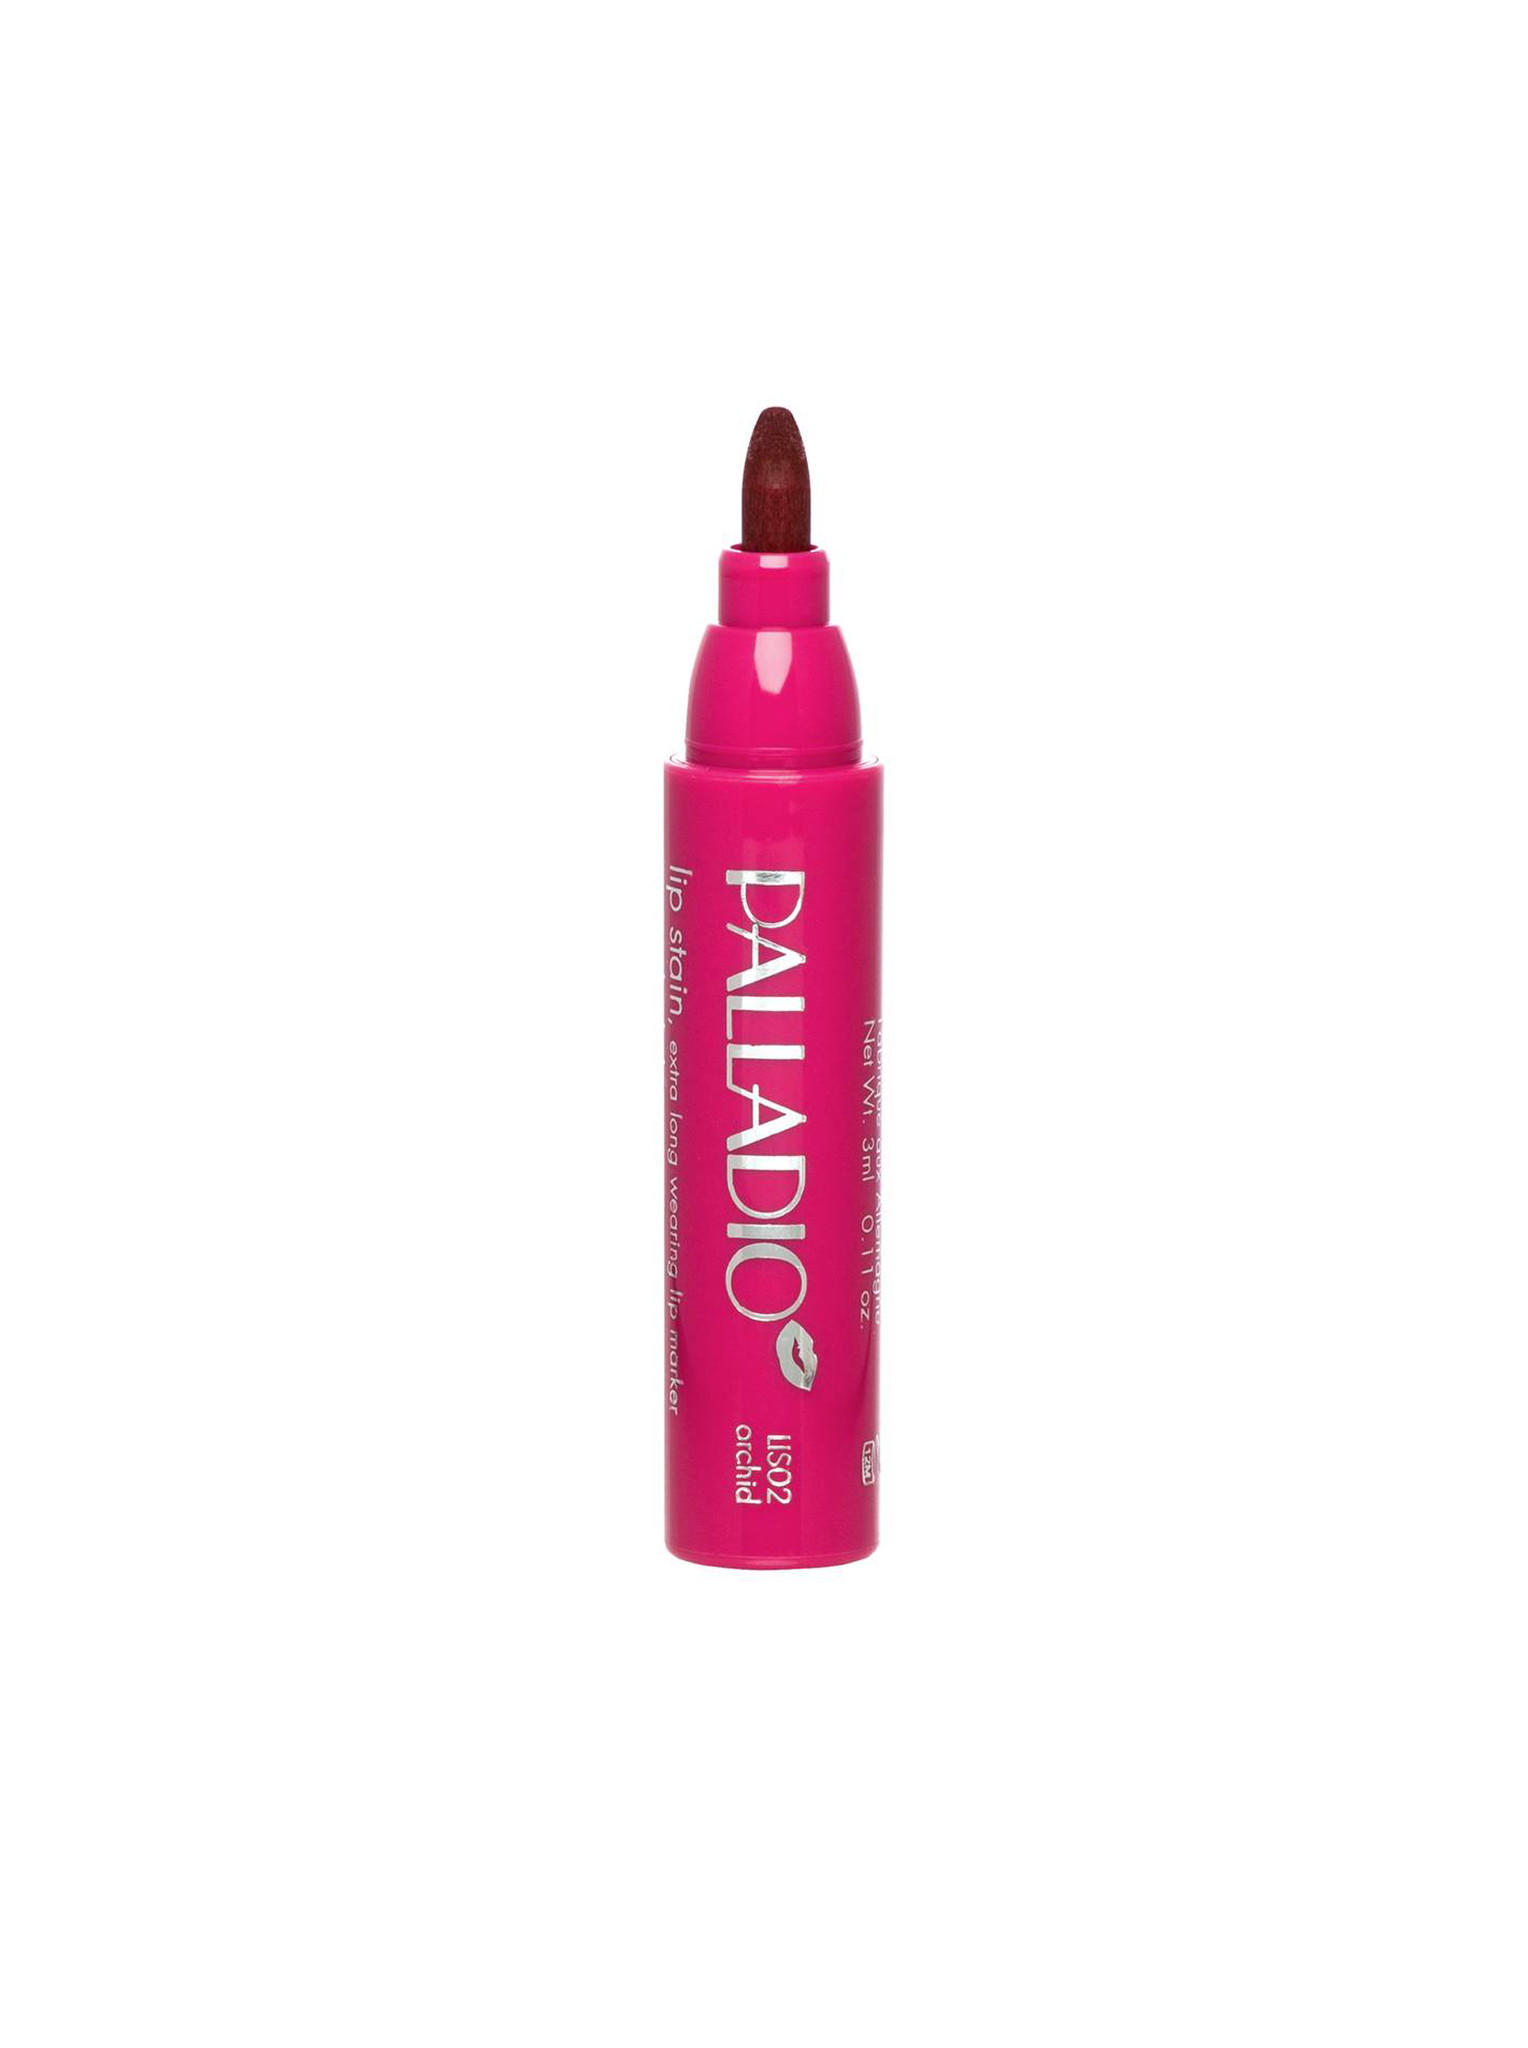 Palladio Beauty Lip Stain in Orchid, $6.